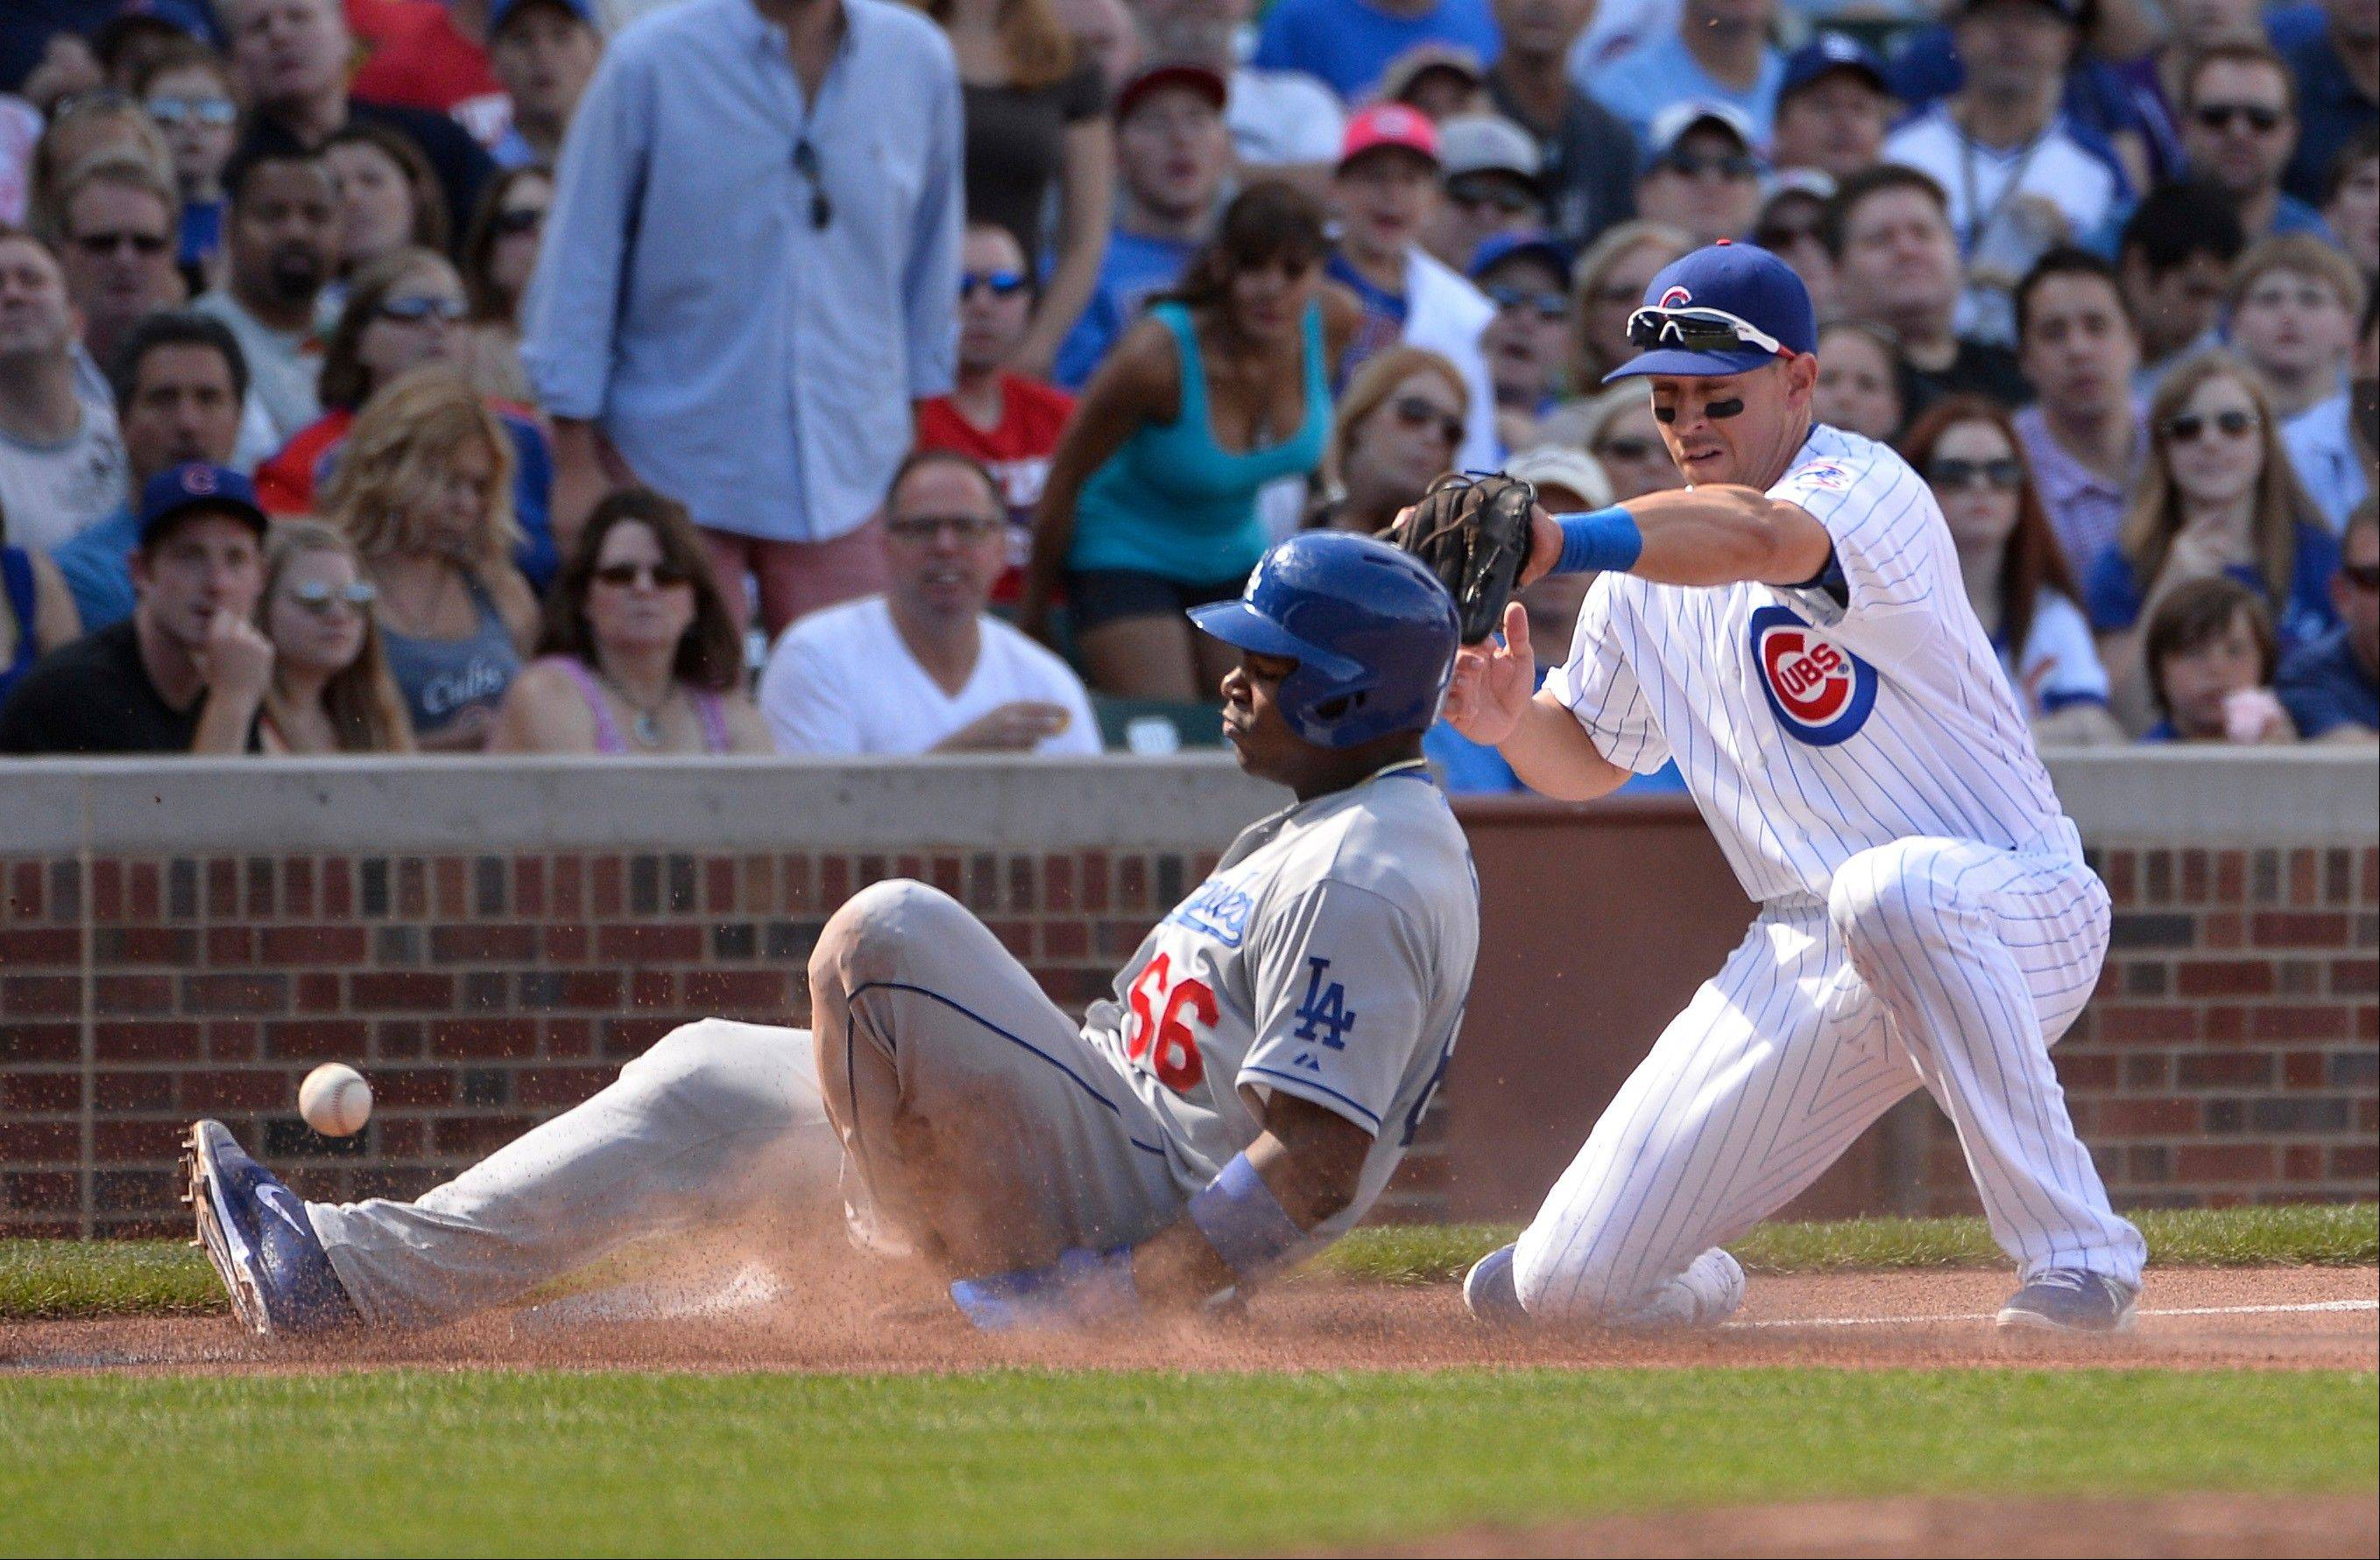 Los Angeles Dodgers' Yasiel Puig, left, slides safely into third base, advancing from first base on a single hit by teammate Andre Ethier, as Chicago Cubs third baseman Cody Ransom tries to make a play during the third inning of a baseball game, Saturday, Aug. 3, 2013, in Chicago.